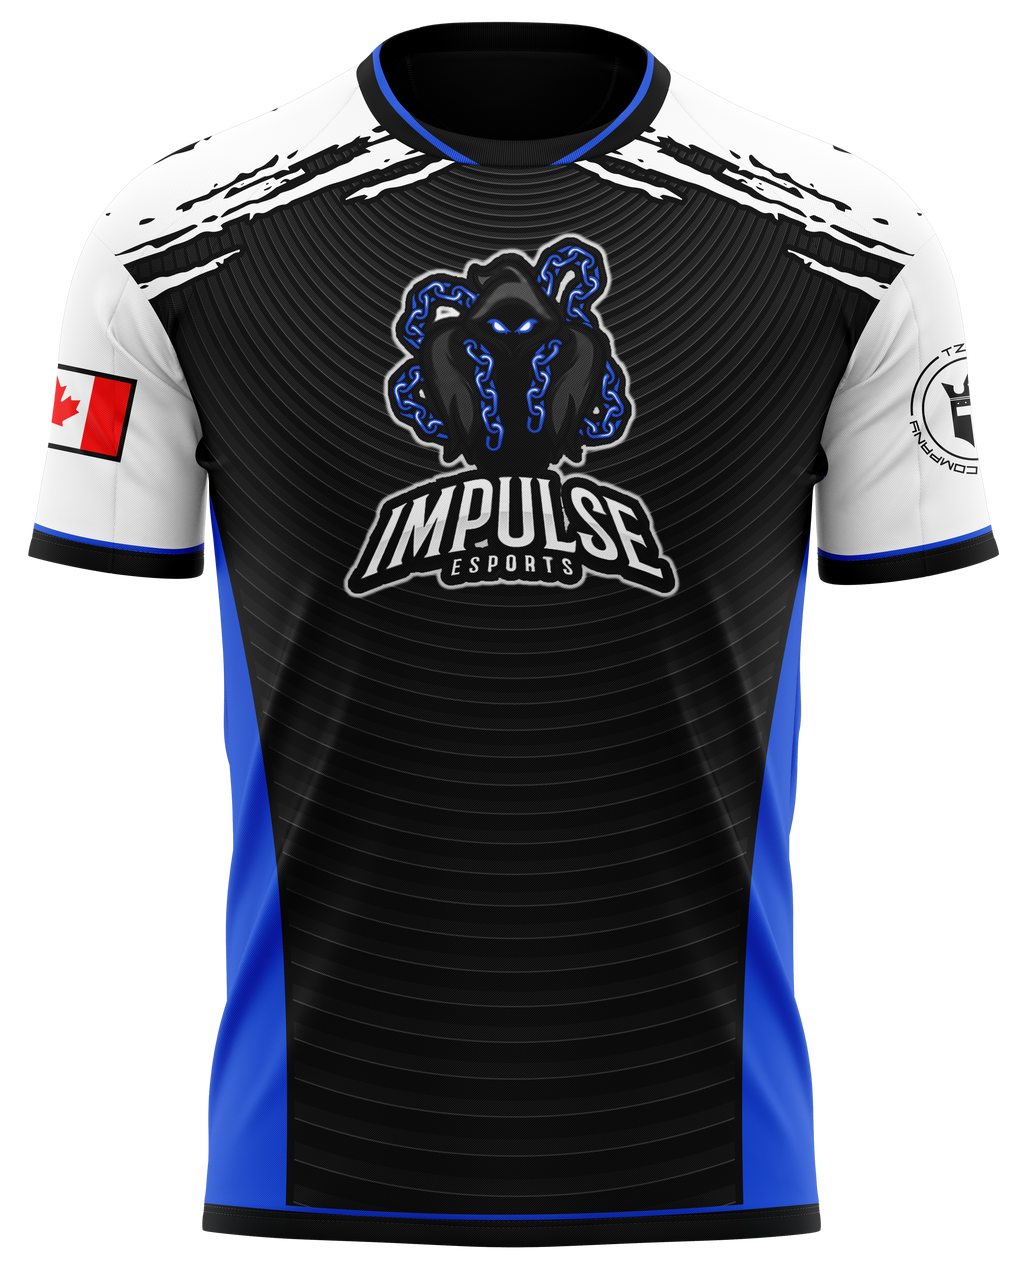 Impulse Esports Dark Blue Pro Jersey